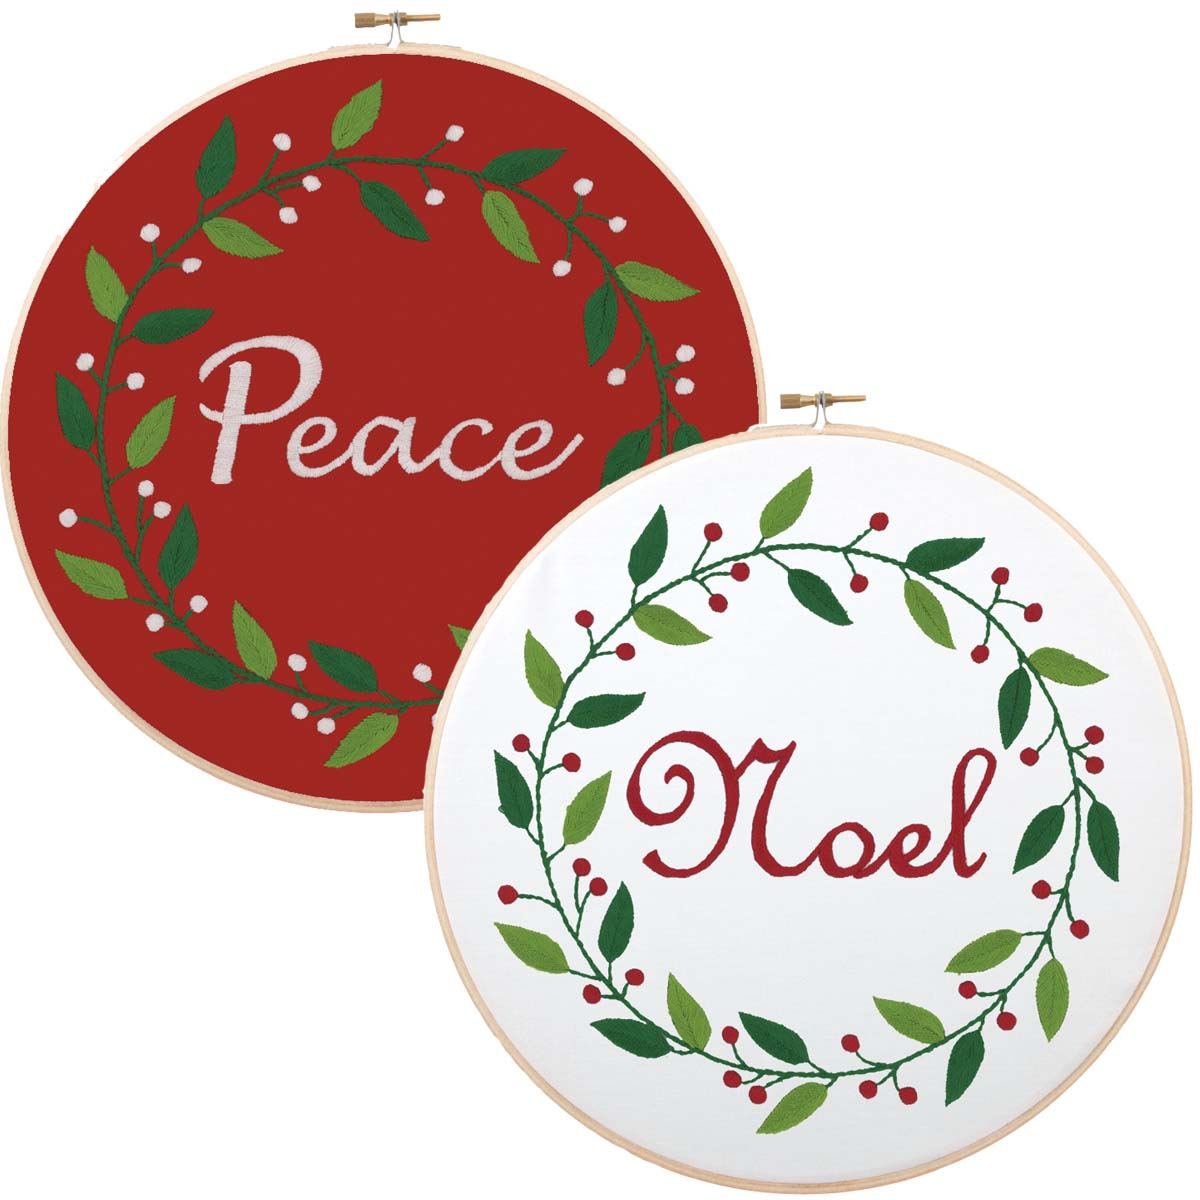 Herrschners® Winter Wreaths Stamped Embroidery Kit